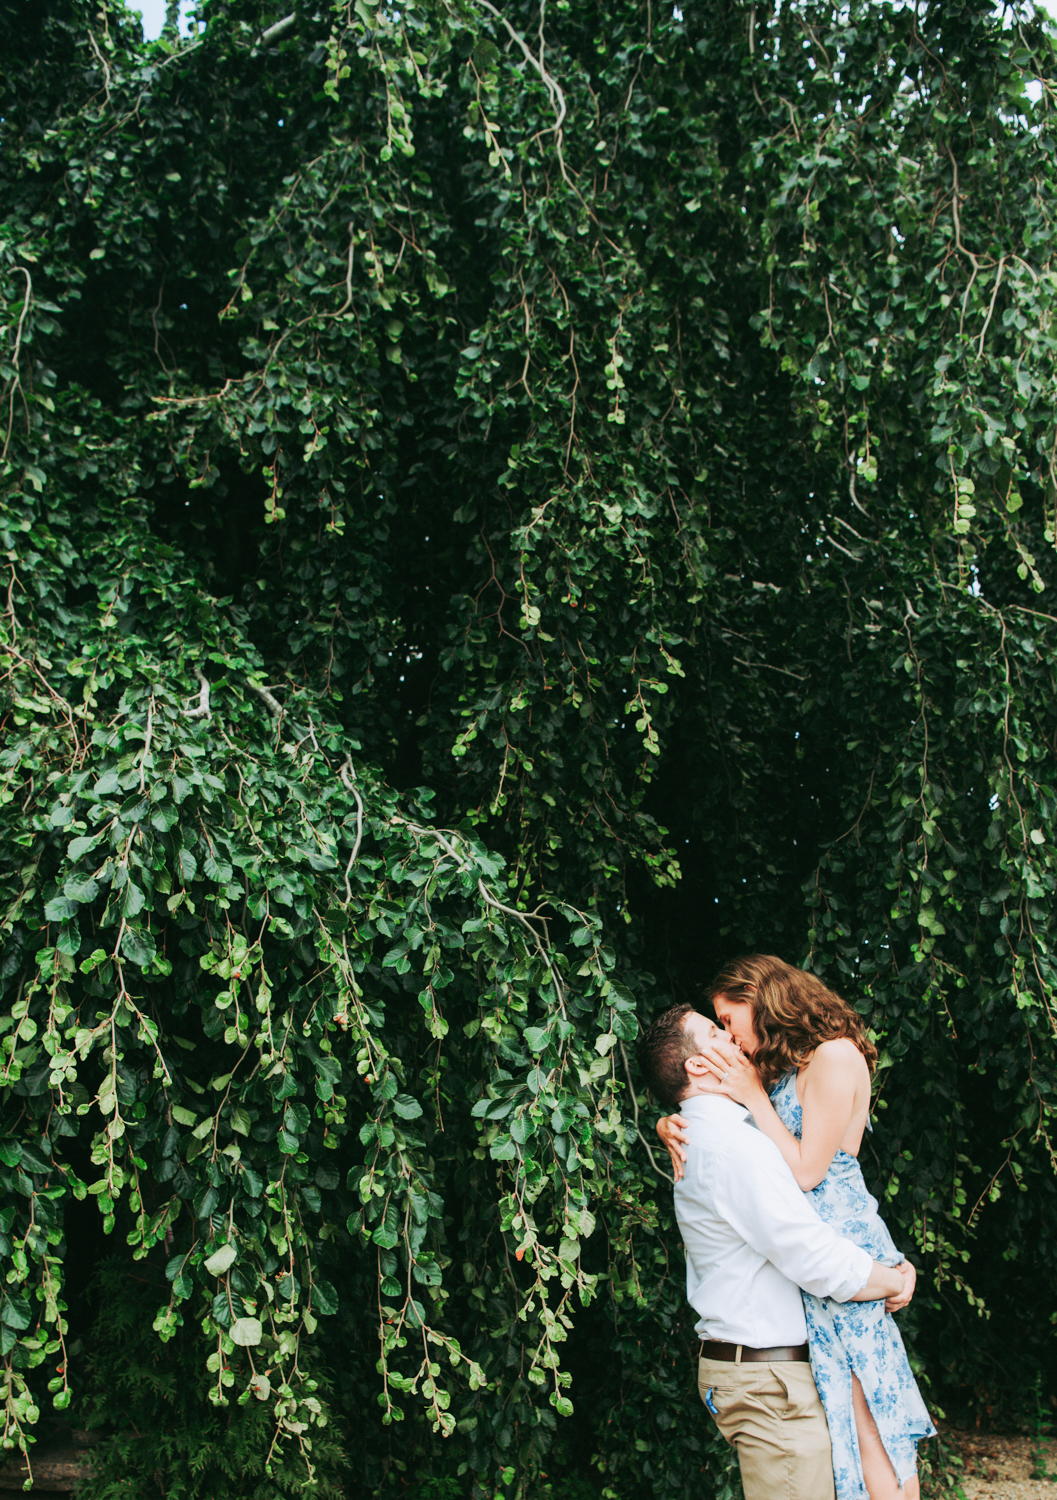 hilary_brian_engagement_middletown_nursery_west_tisbury-3760.jpg